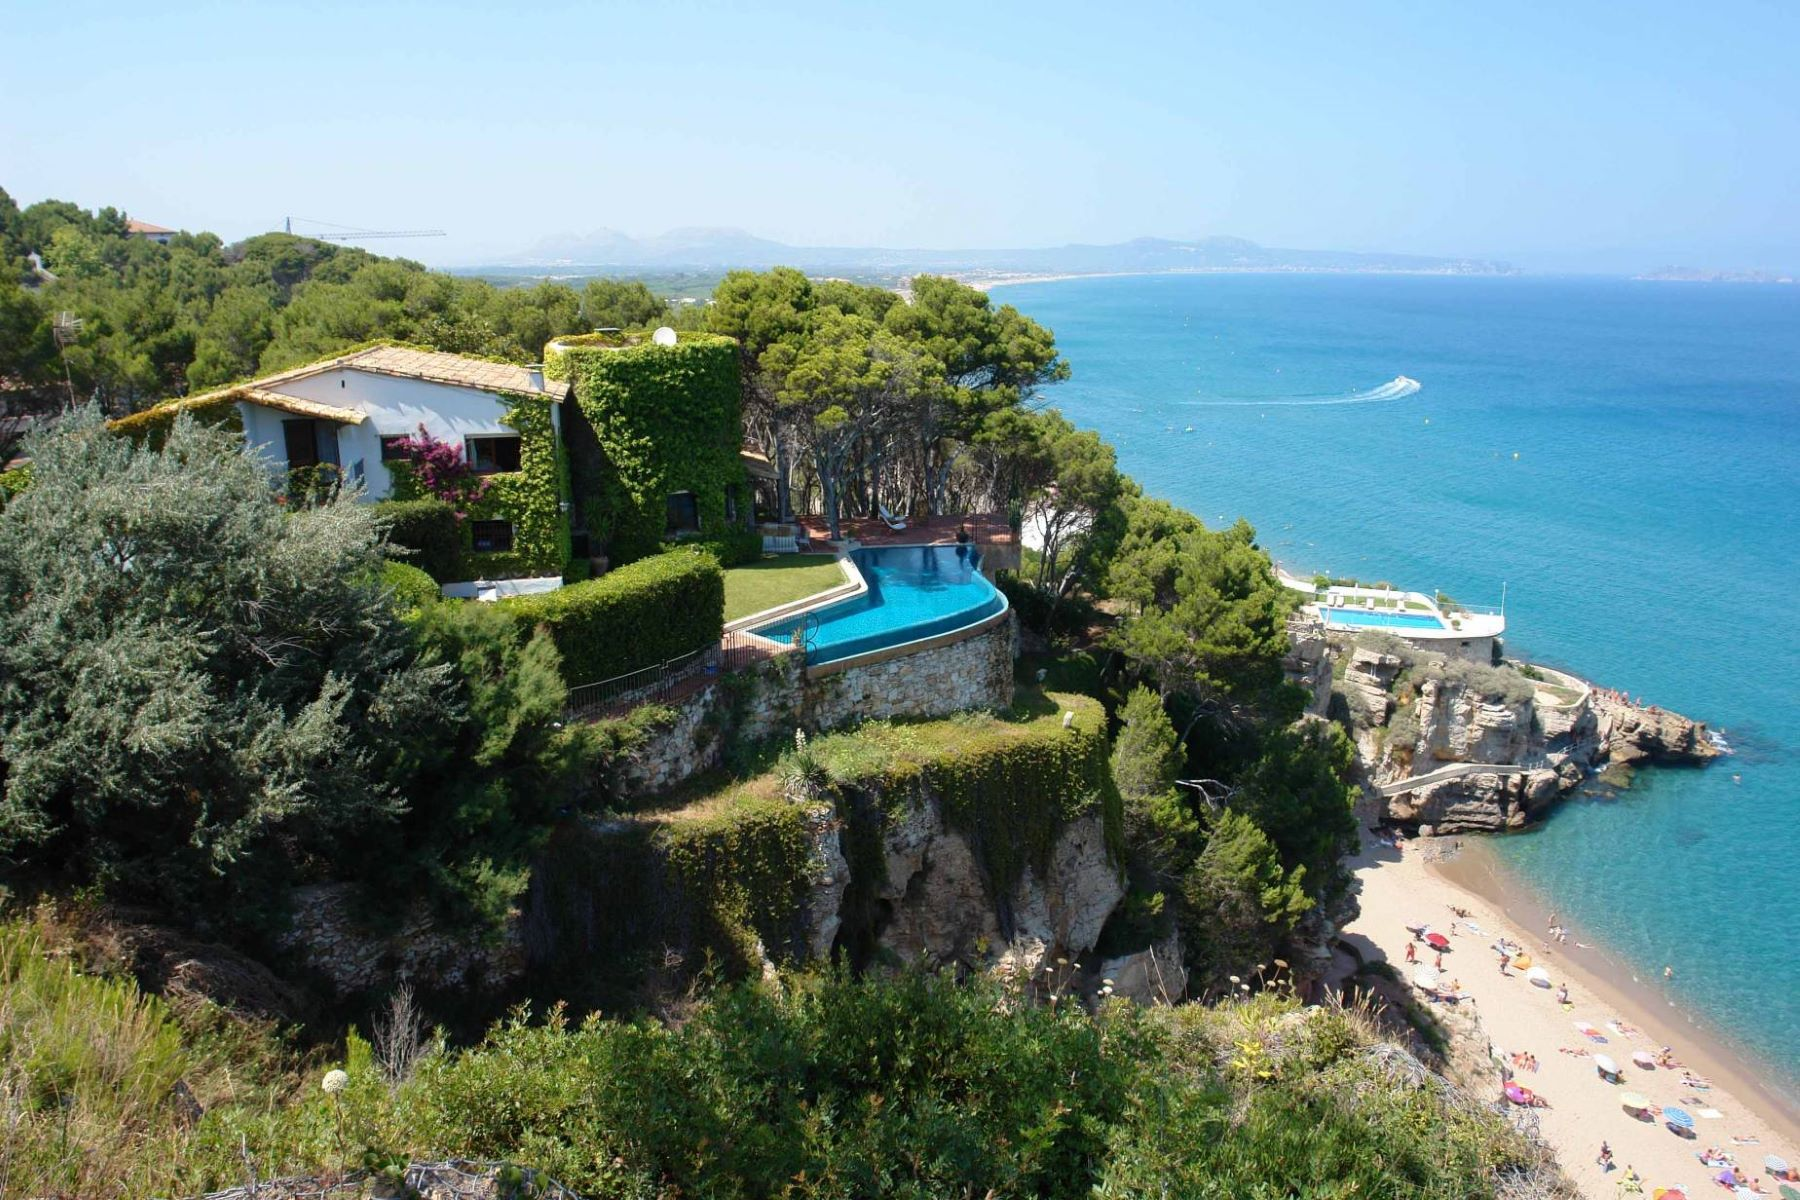 Single Family Home for Sale at A diamond in the rough in Sa Riera, Begur with views Begur, Costa Brava, 17255 Spain